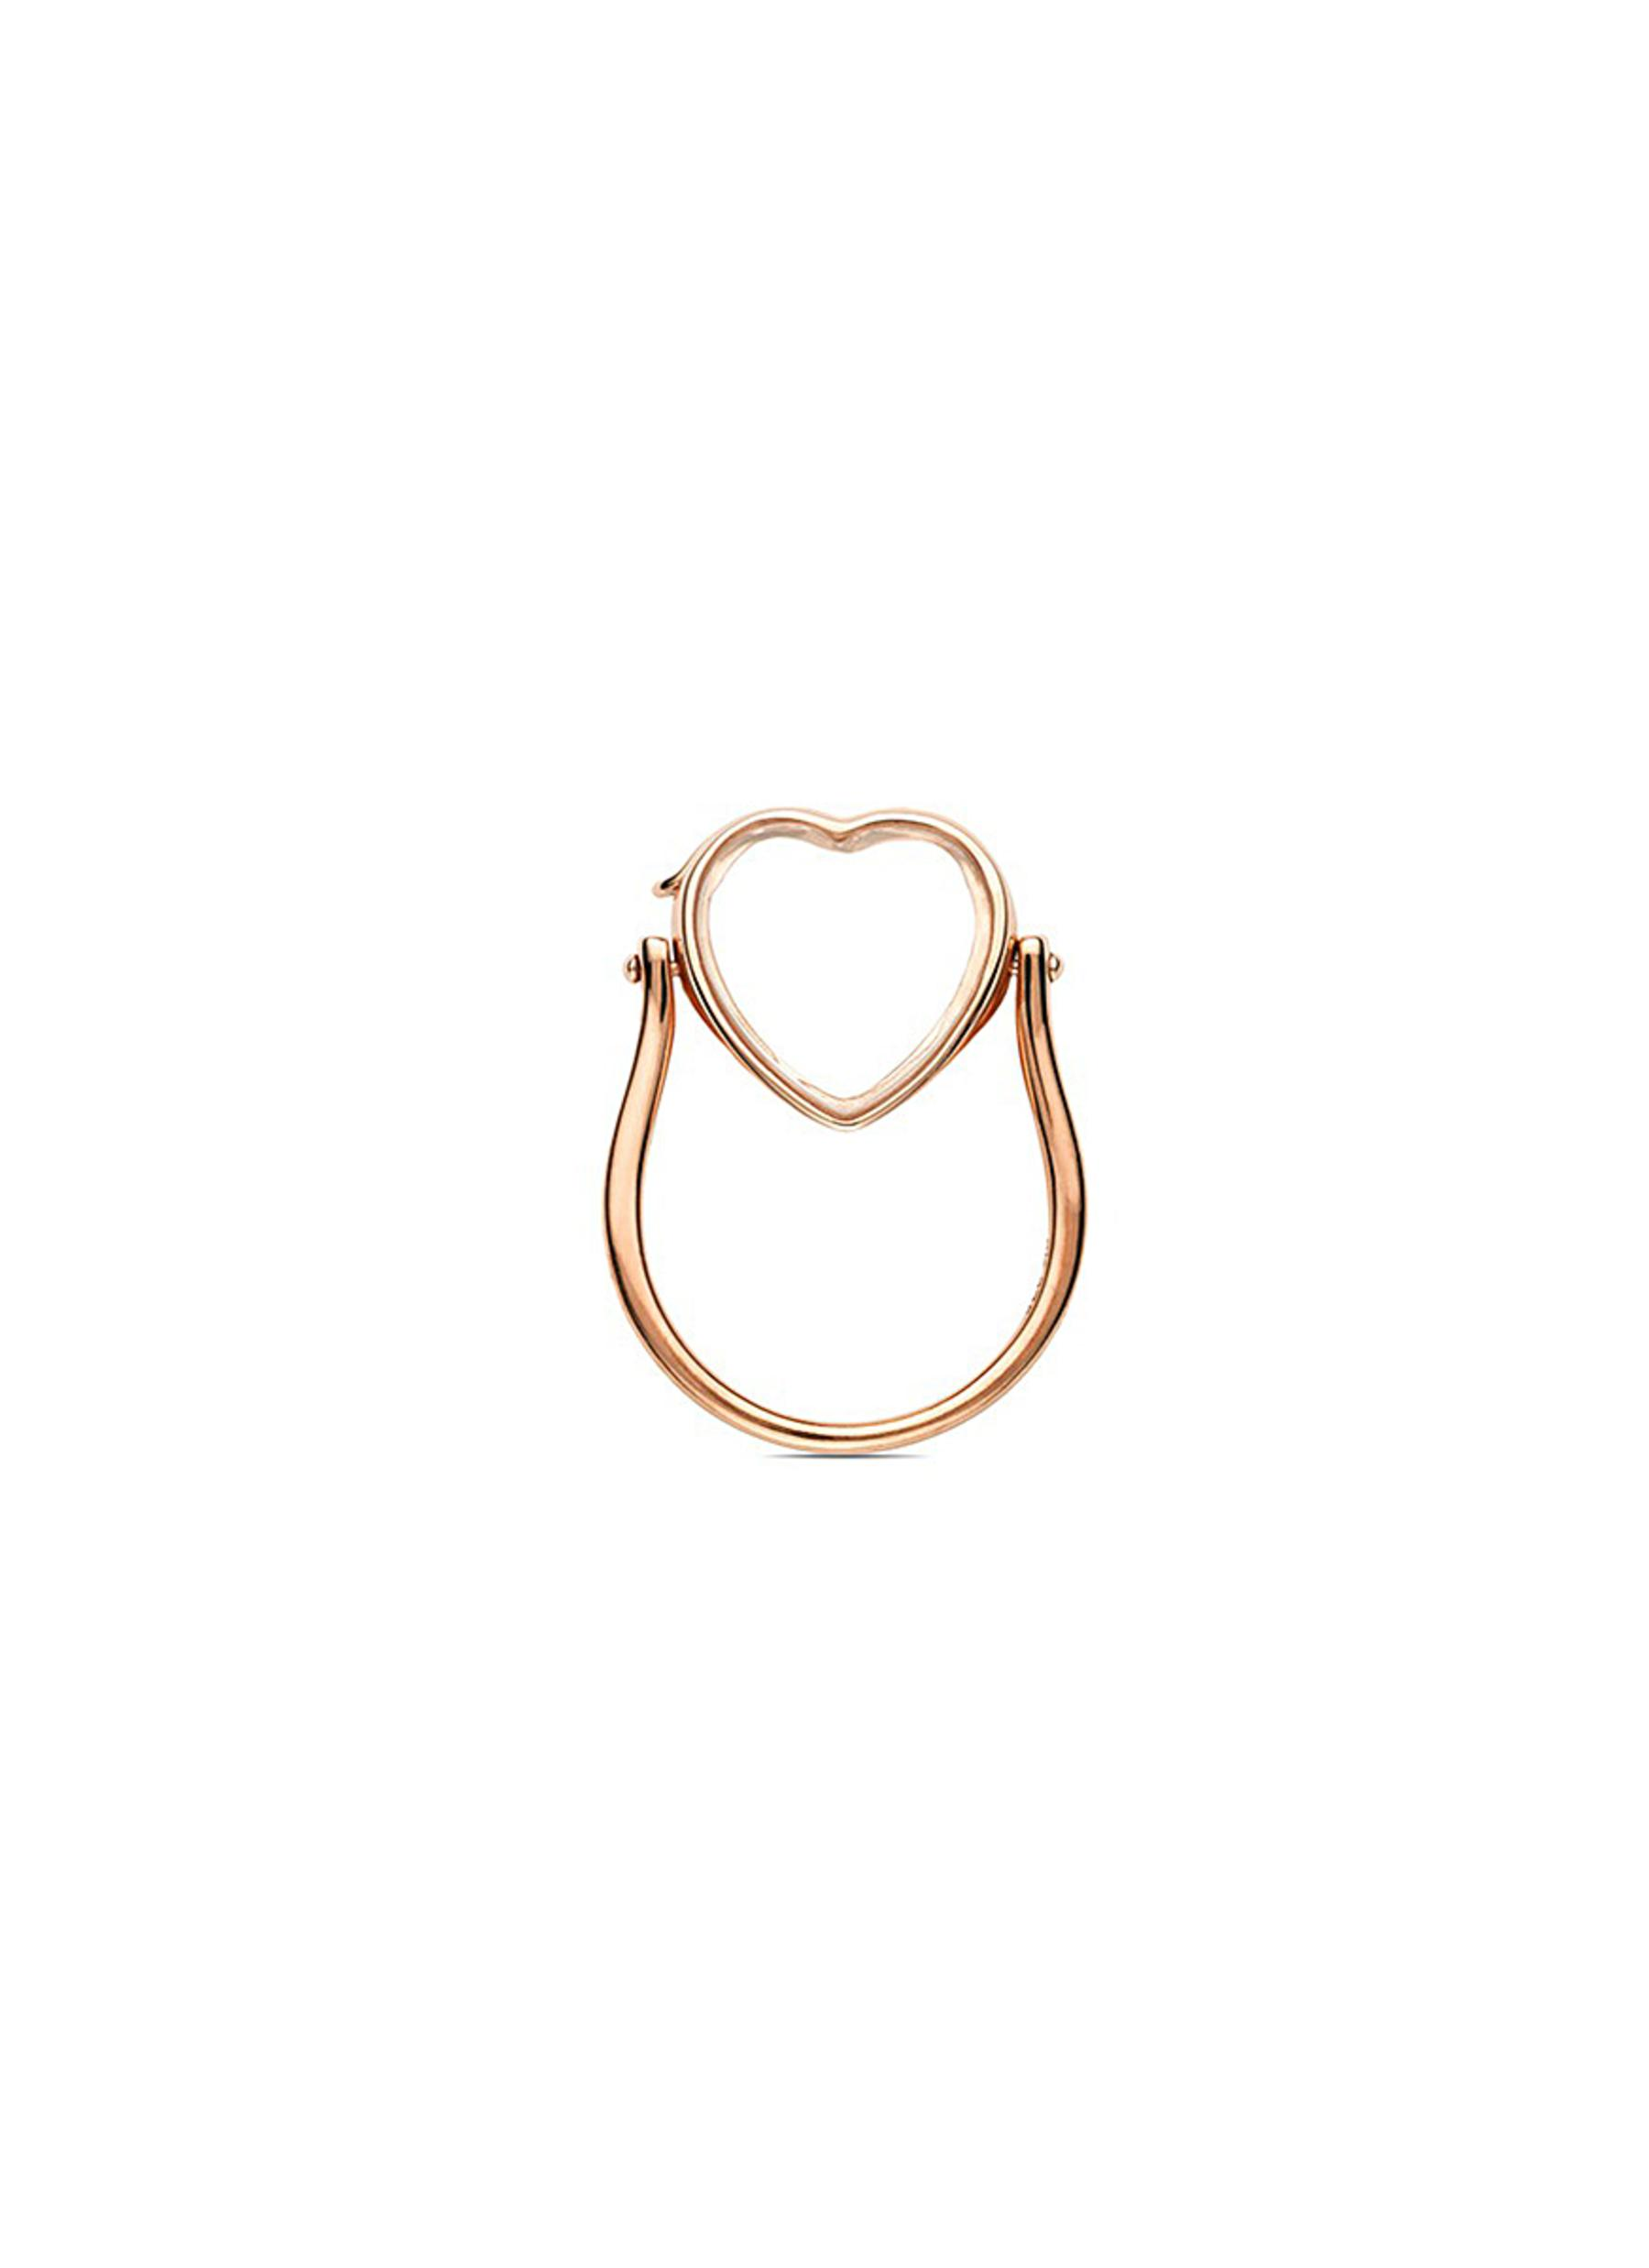 14k rose gold heart locket ring - Medium 15mm